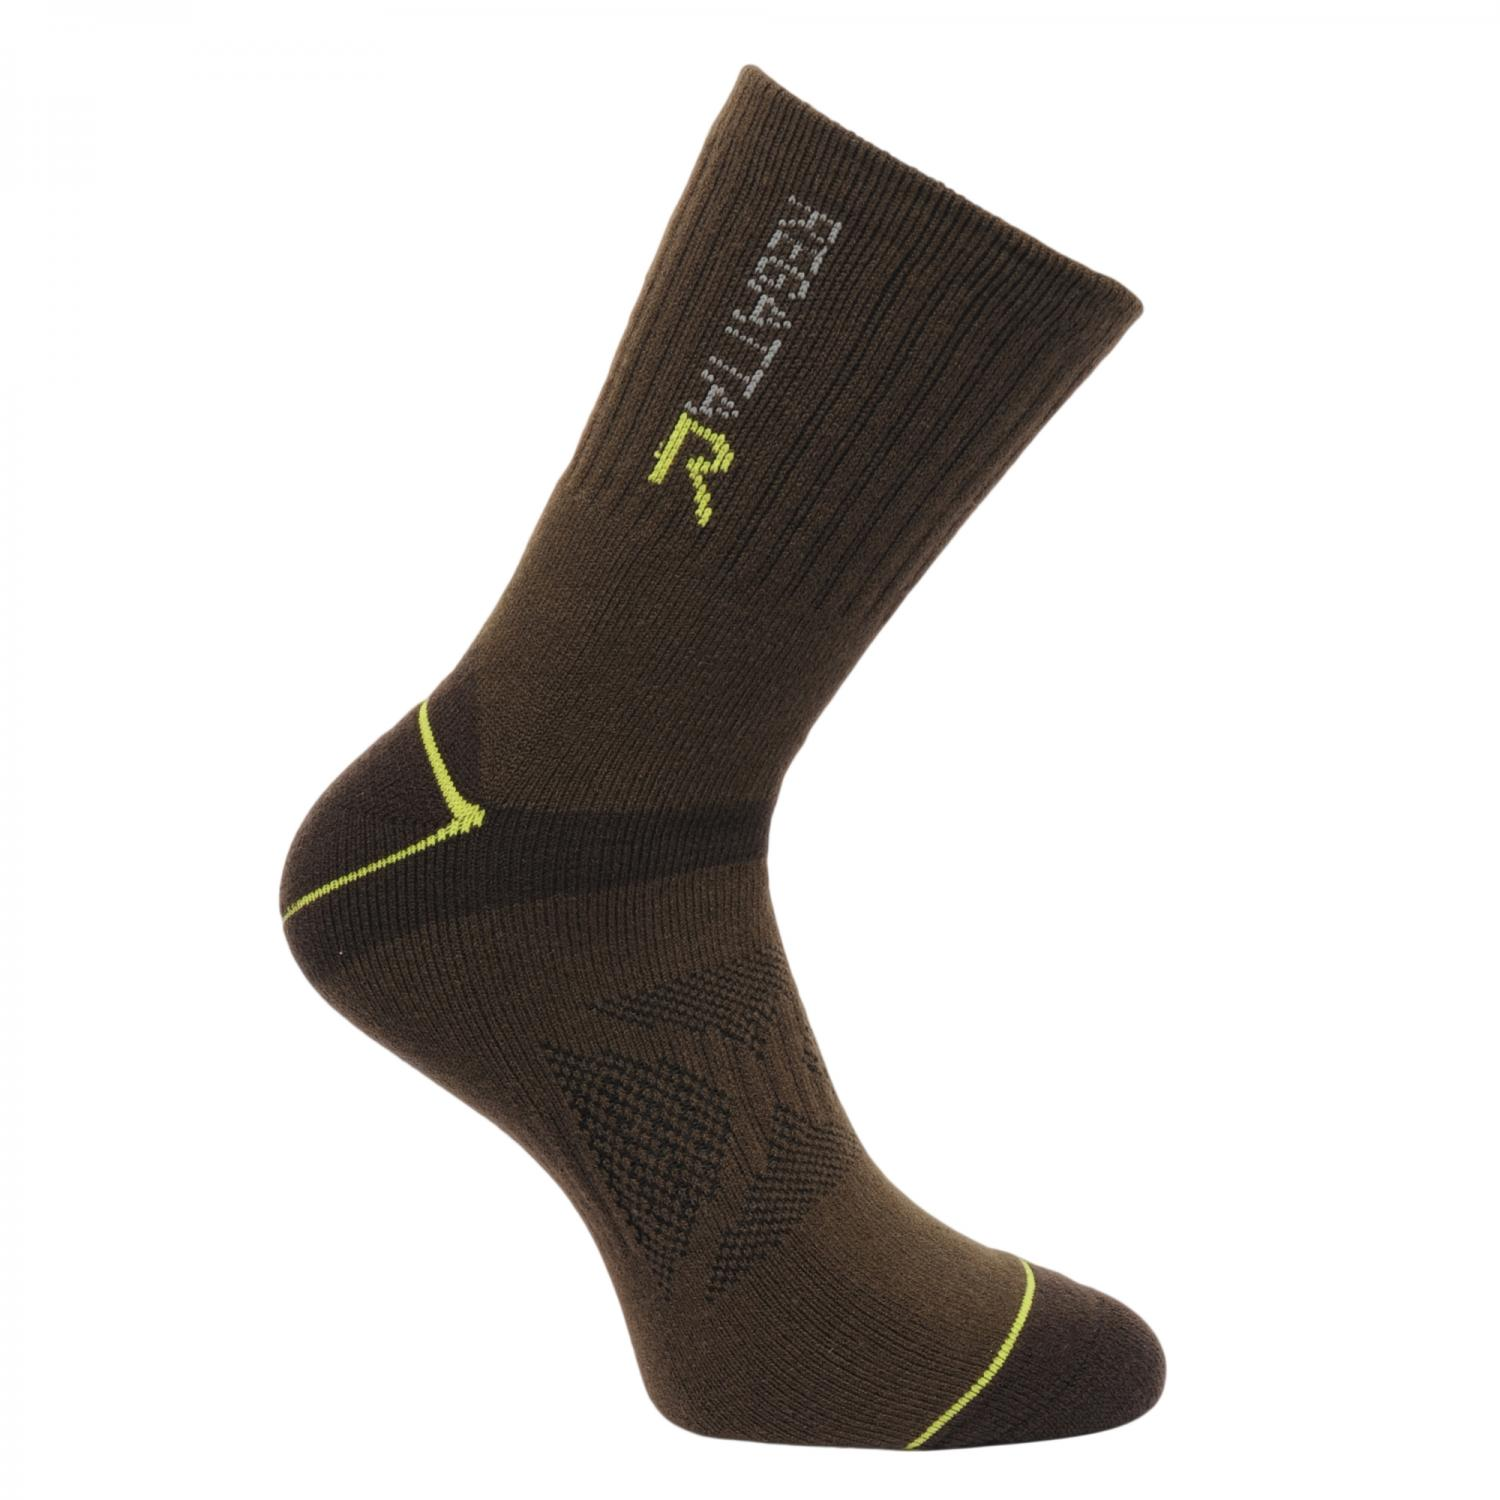 Mens Blister Protection Socks Clove Oasis